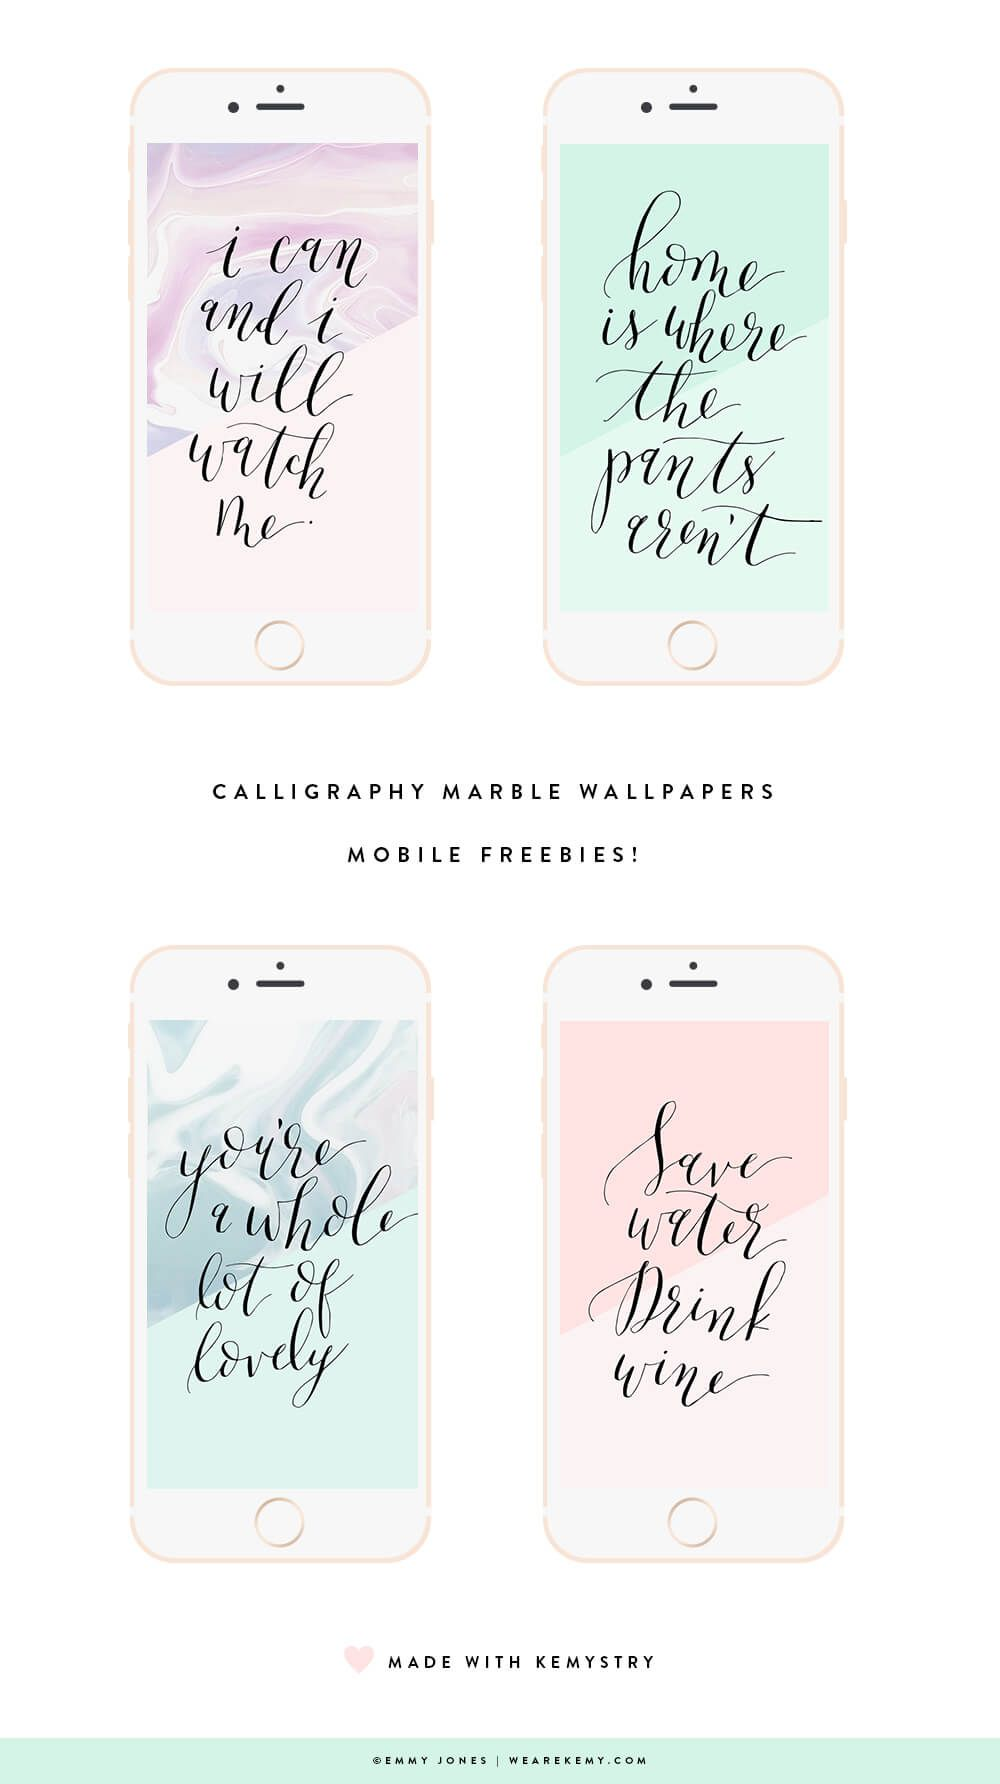 Download Your Free Wallpapers, Choose From Four Calligraphy Quotes With  Marble Textures.   We